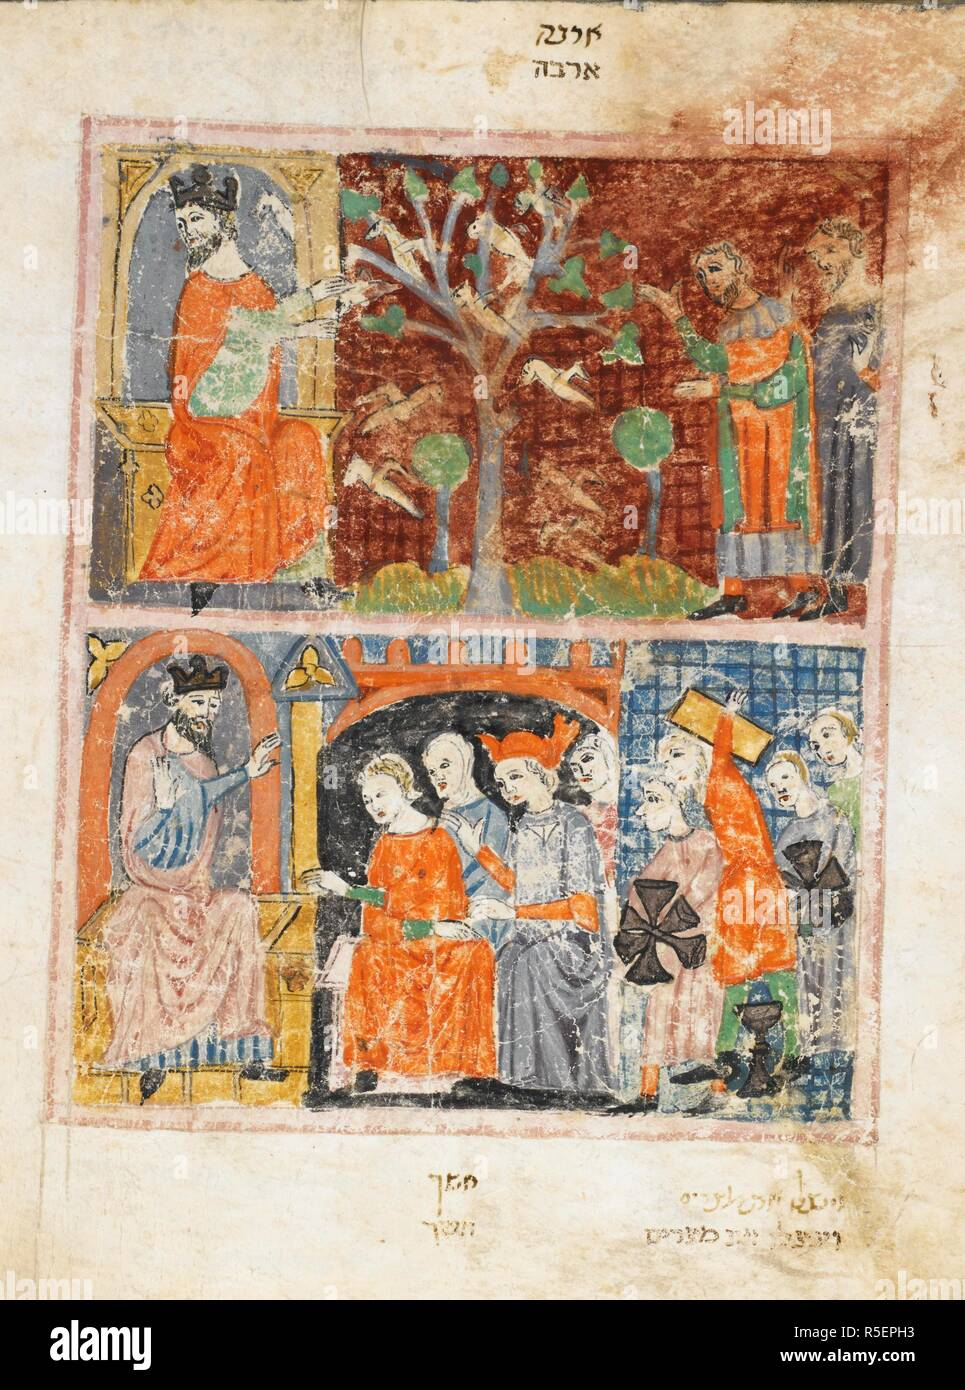 Scenes from the old testament from the 'Haggadah Pesach', or liturgy of the Jewish Passover, with grotesque initials and gilt headings. Sister Haggadah. Catalonia, mid 14th century. Source: Or. 2884, f.15v. Language: Hebrew. - Stock Image